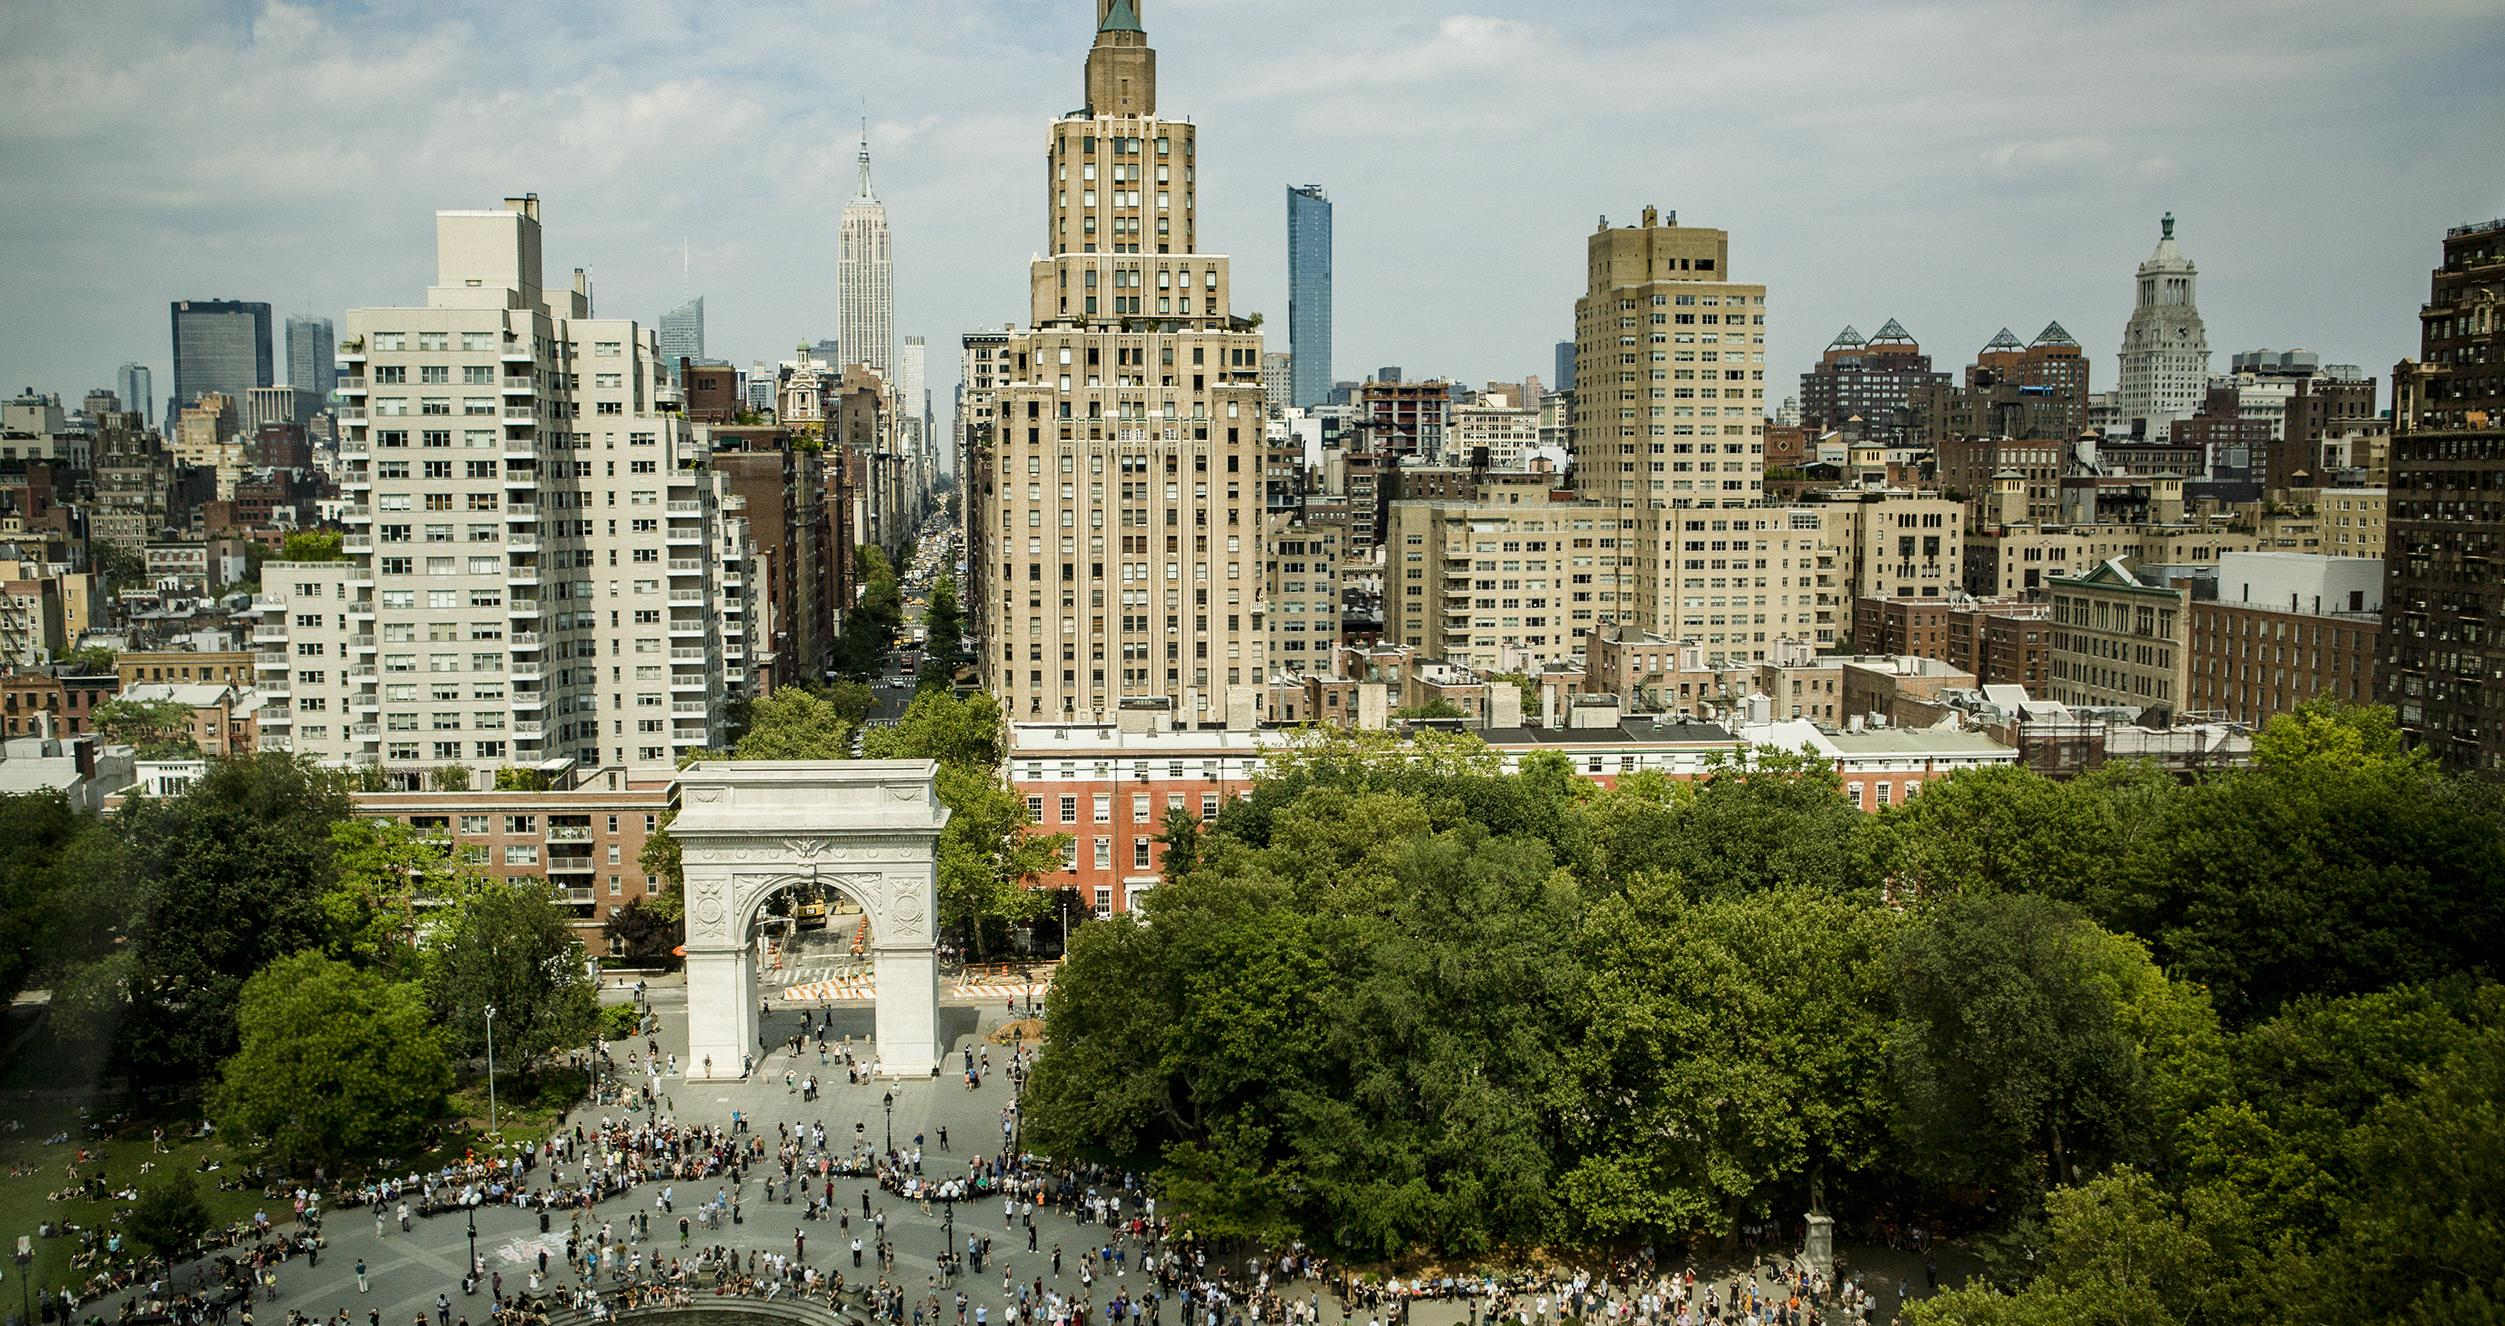 Washington Square Park from Above